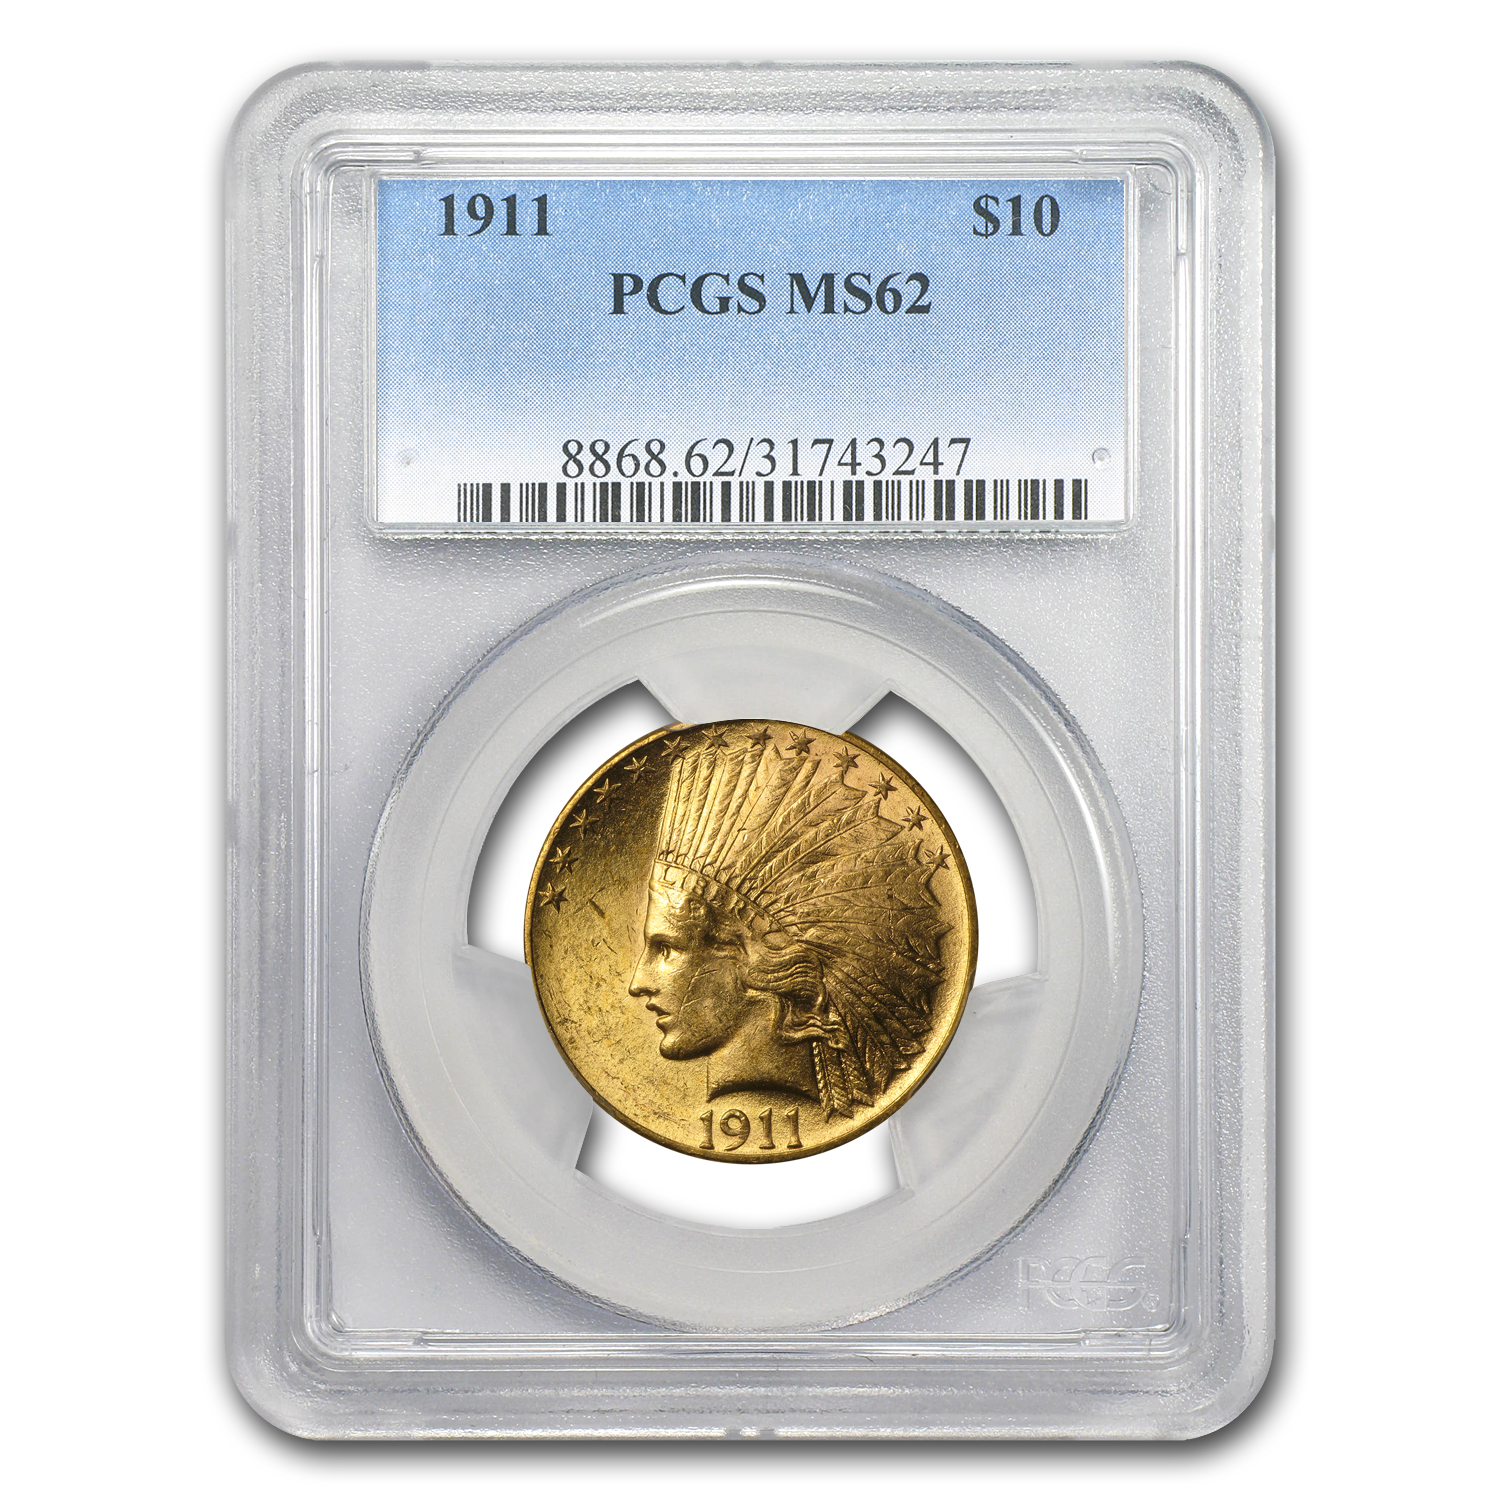 1911 $10 Indian Gold Eagle MS-62 PCGS